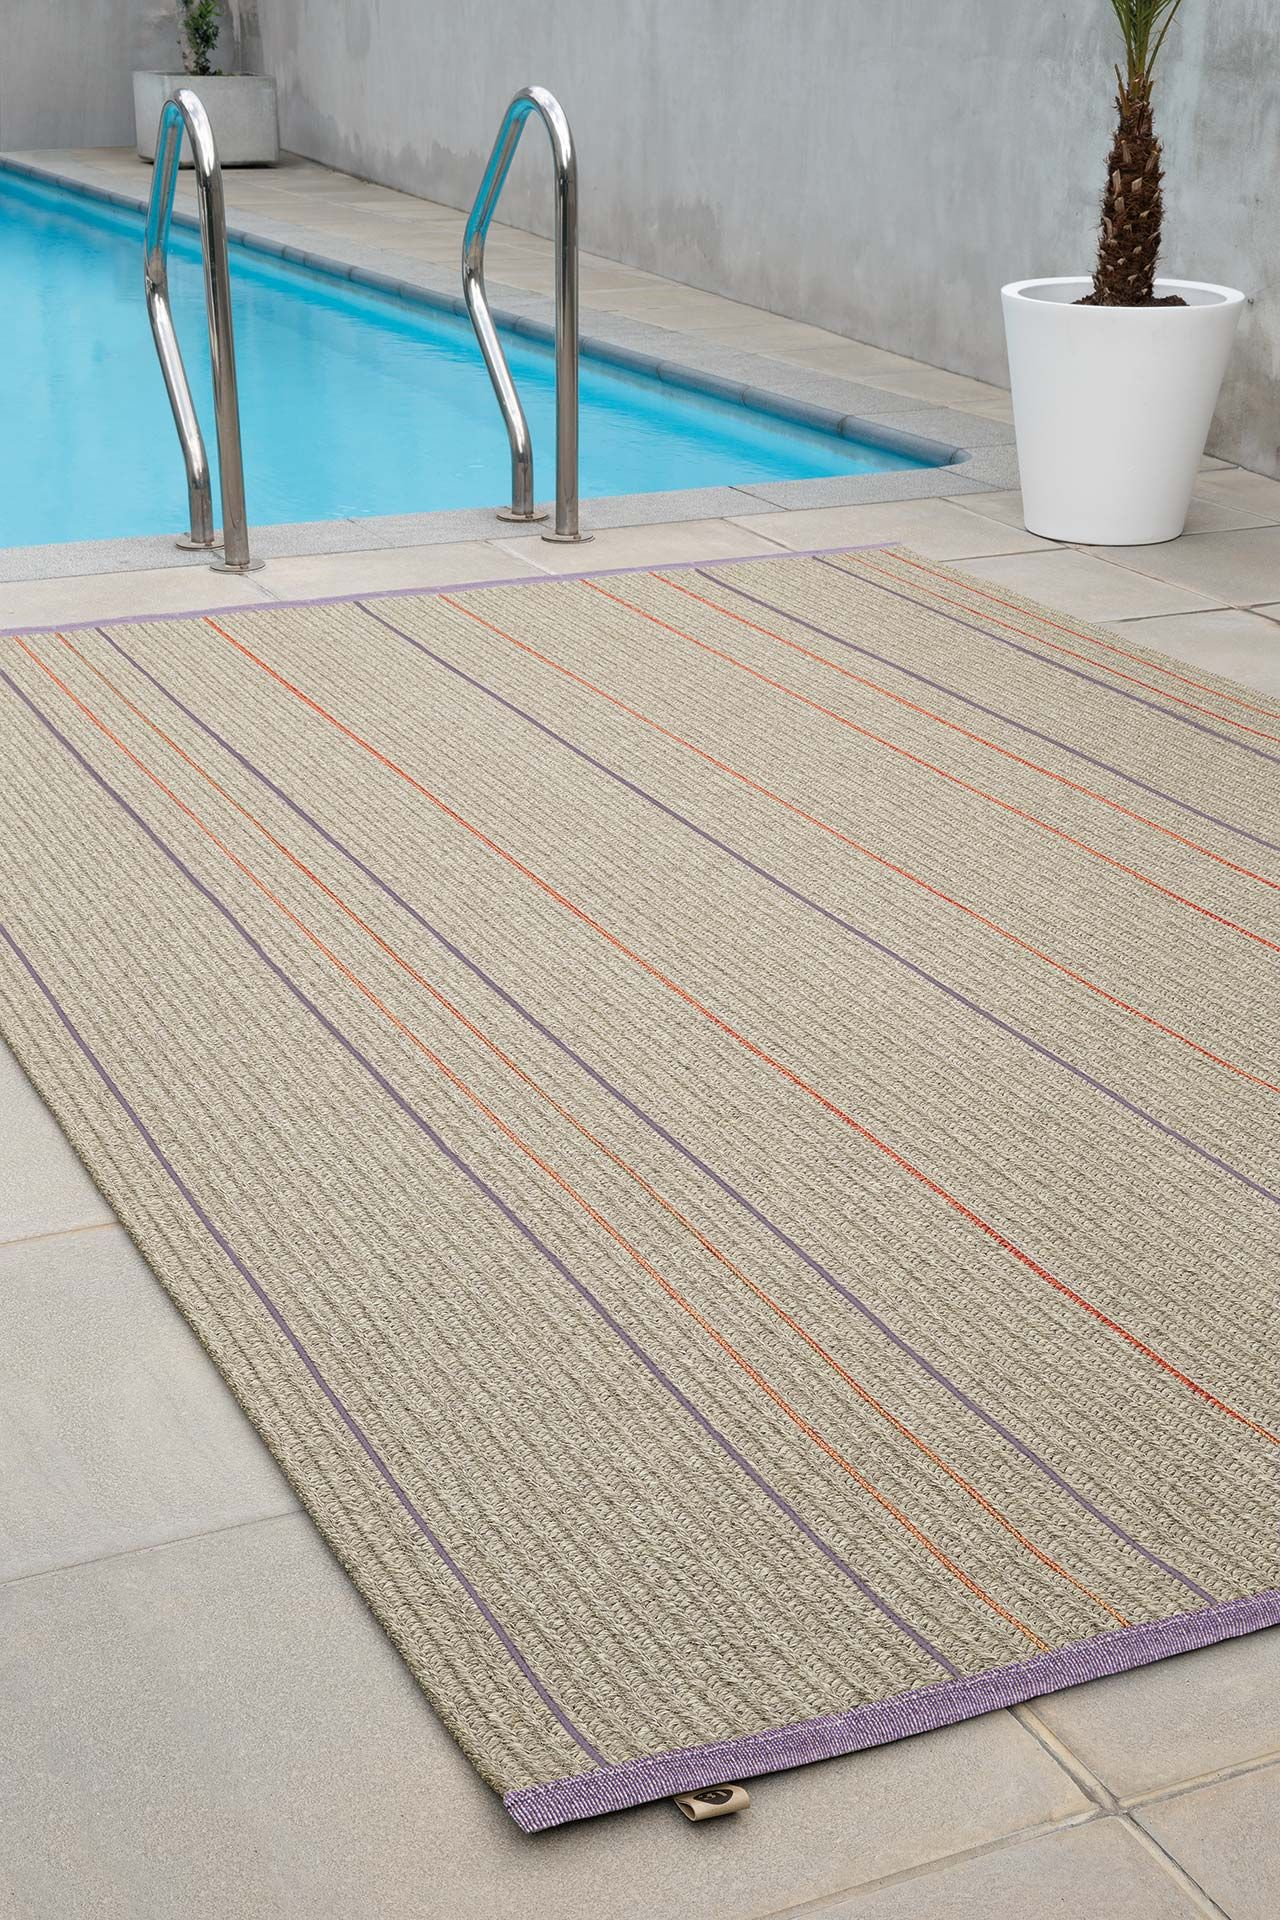 U0027Patio   Purple Orangeu0027 By Limited Edition. Poolside Is Made Out Of  Polyproleen And Is Suitable For Both In  And Outdoor. | Www.le.be |  Collection 2015 ...